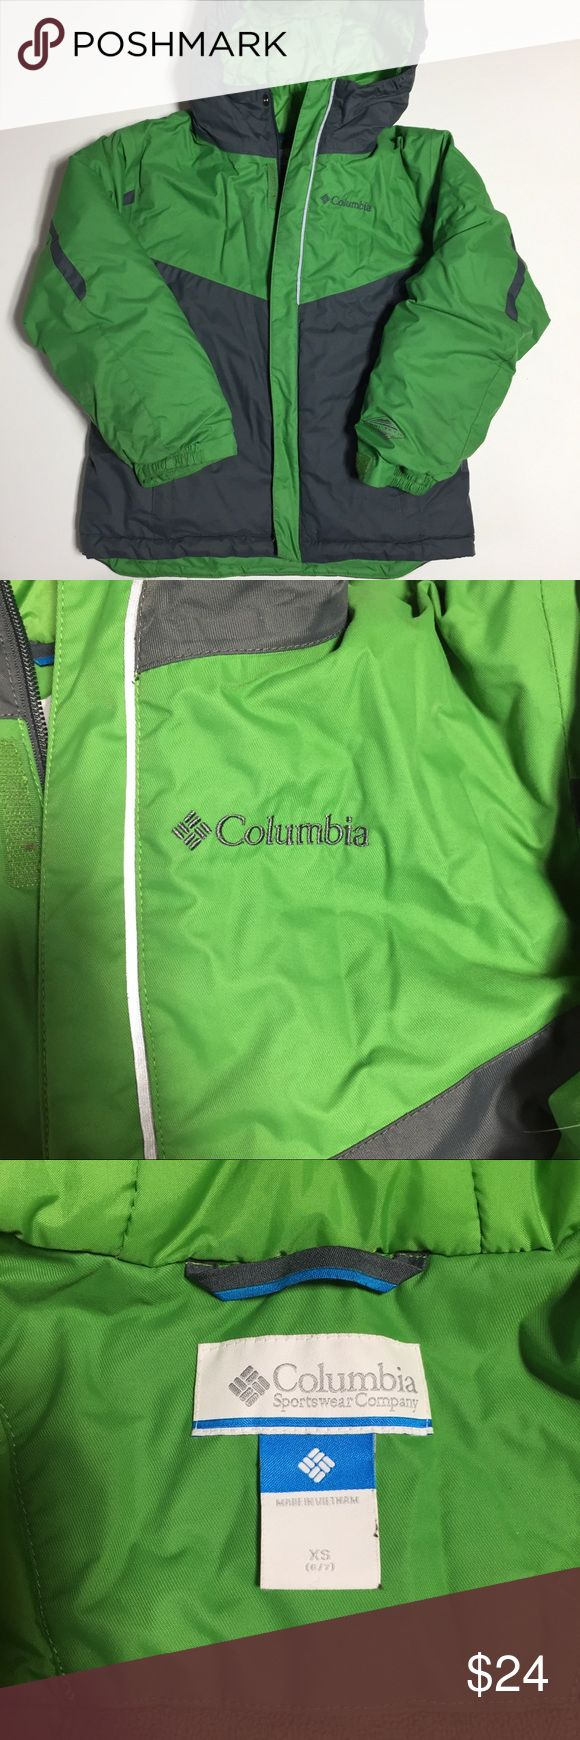 Columbia Boys Winter Jacket Size XS (6/7). Green and gray. Nylon and polyester. Front zip pockets. Hood. Zip and Velcro front closure. Inside pockets. Internal sleeve grow feature. Very good condition. (2/20 32) Columbia Jackets & Coats